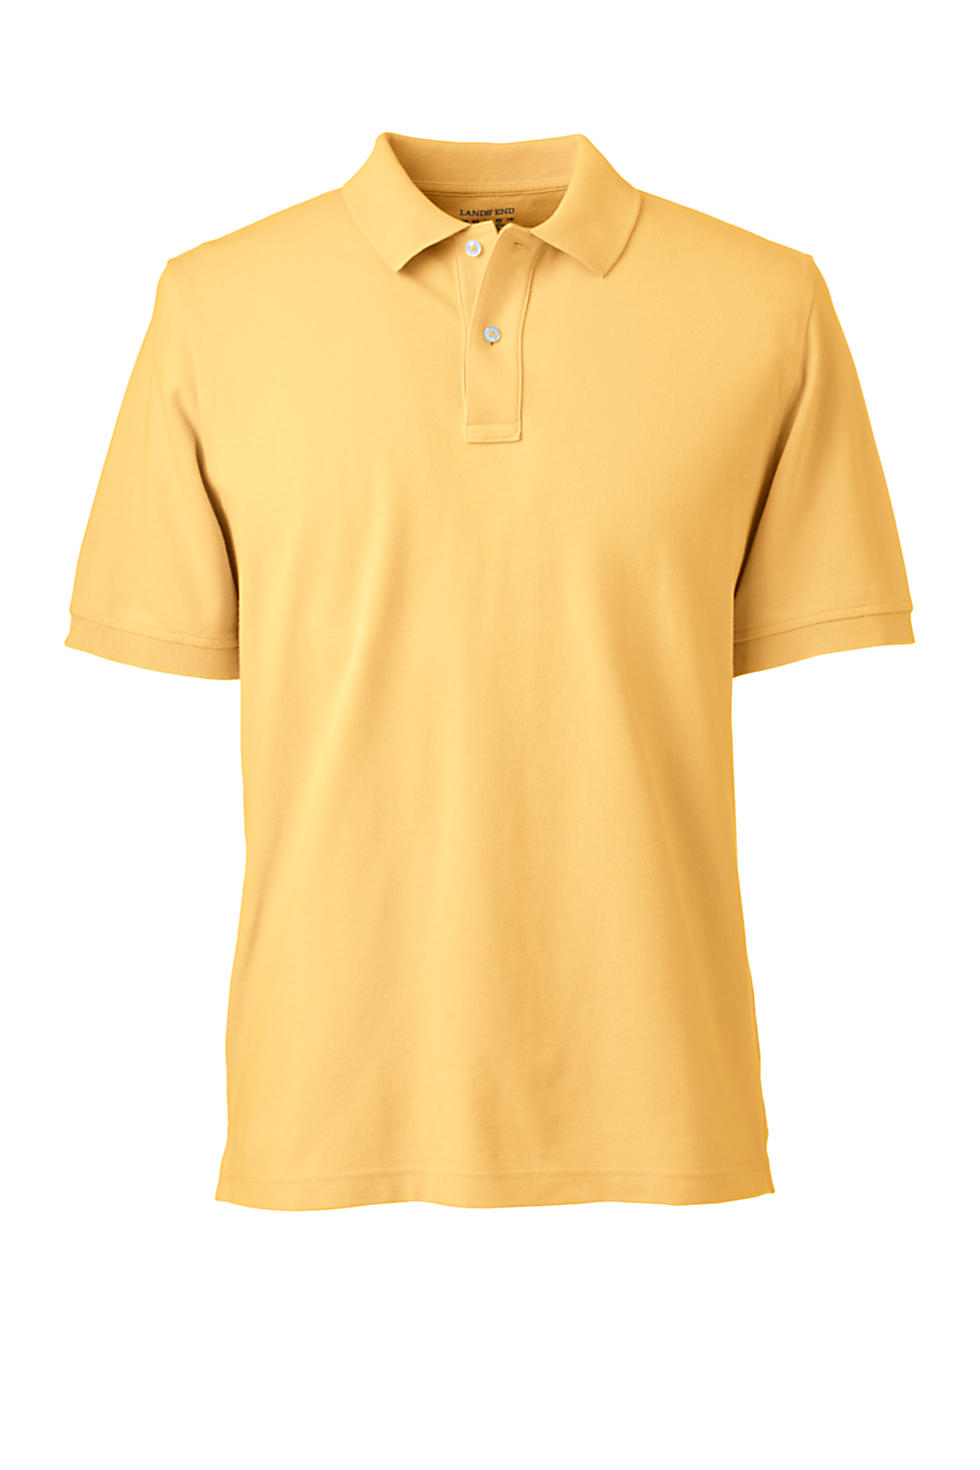 Lands' End Men's Banded Short Sleeve Mesh Polo